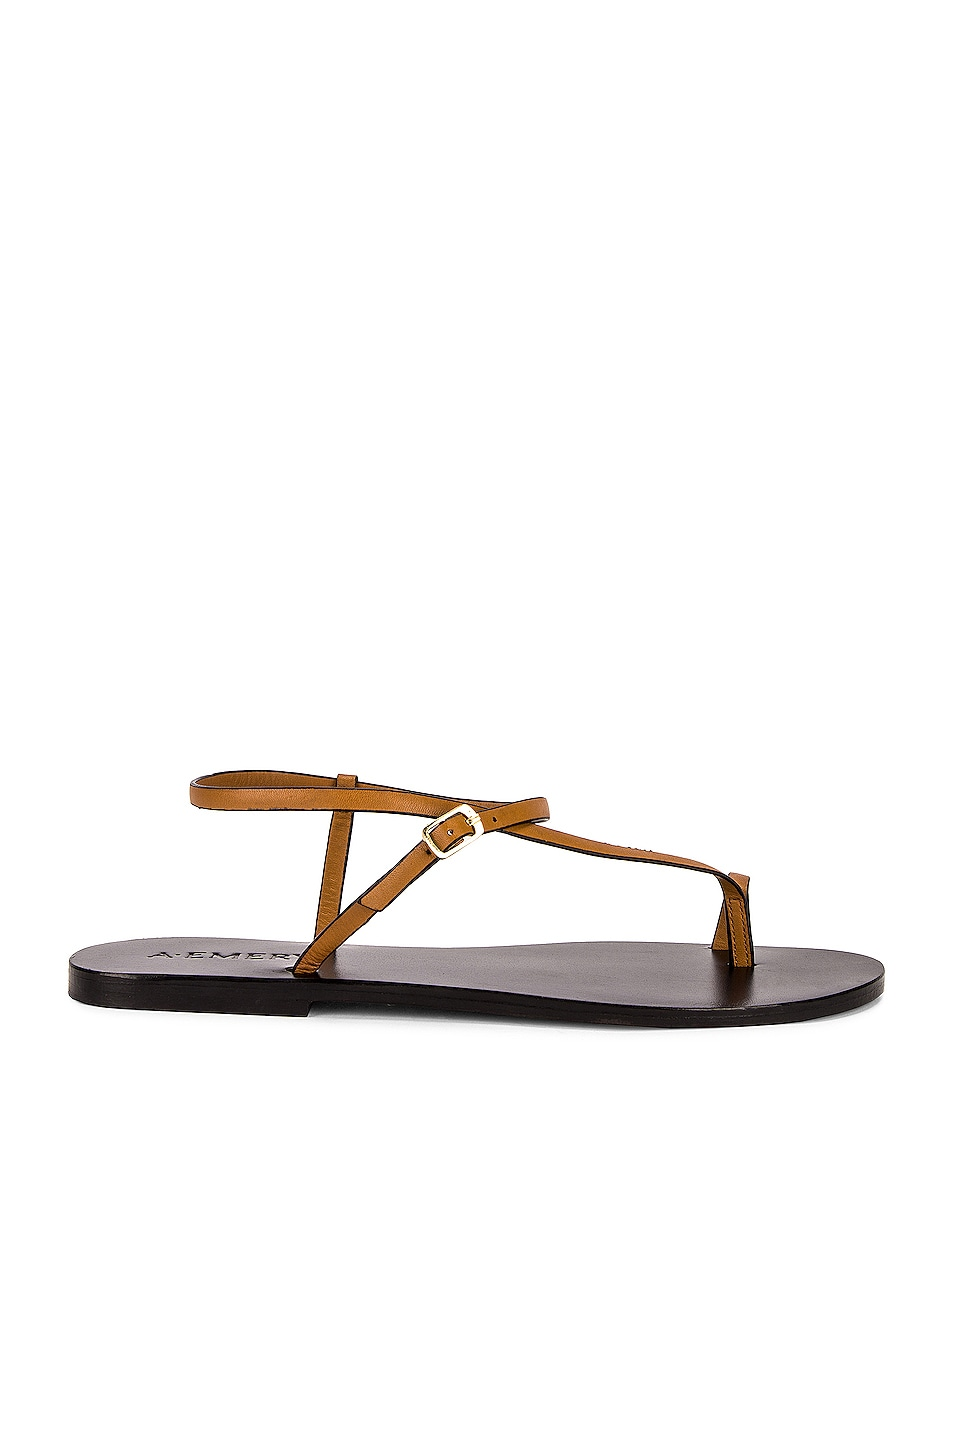 Image 1 of A.EMERY Lily Sandal in Tan & Black